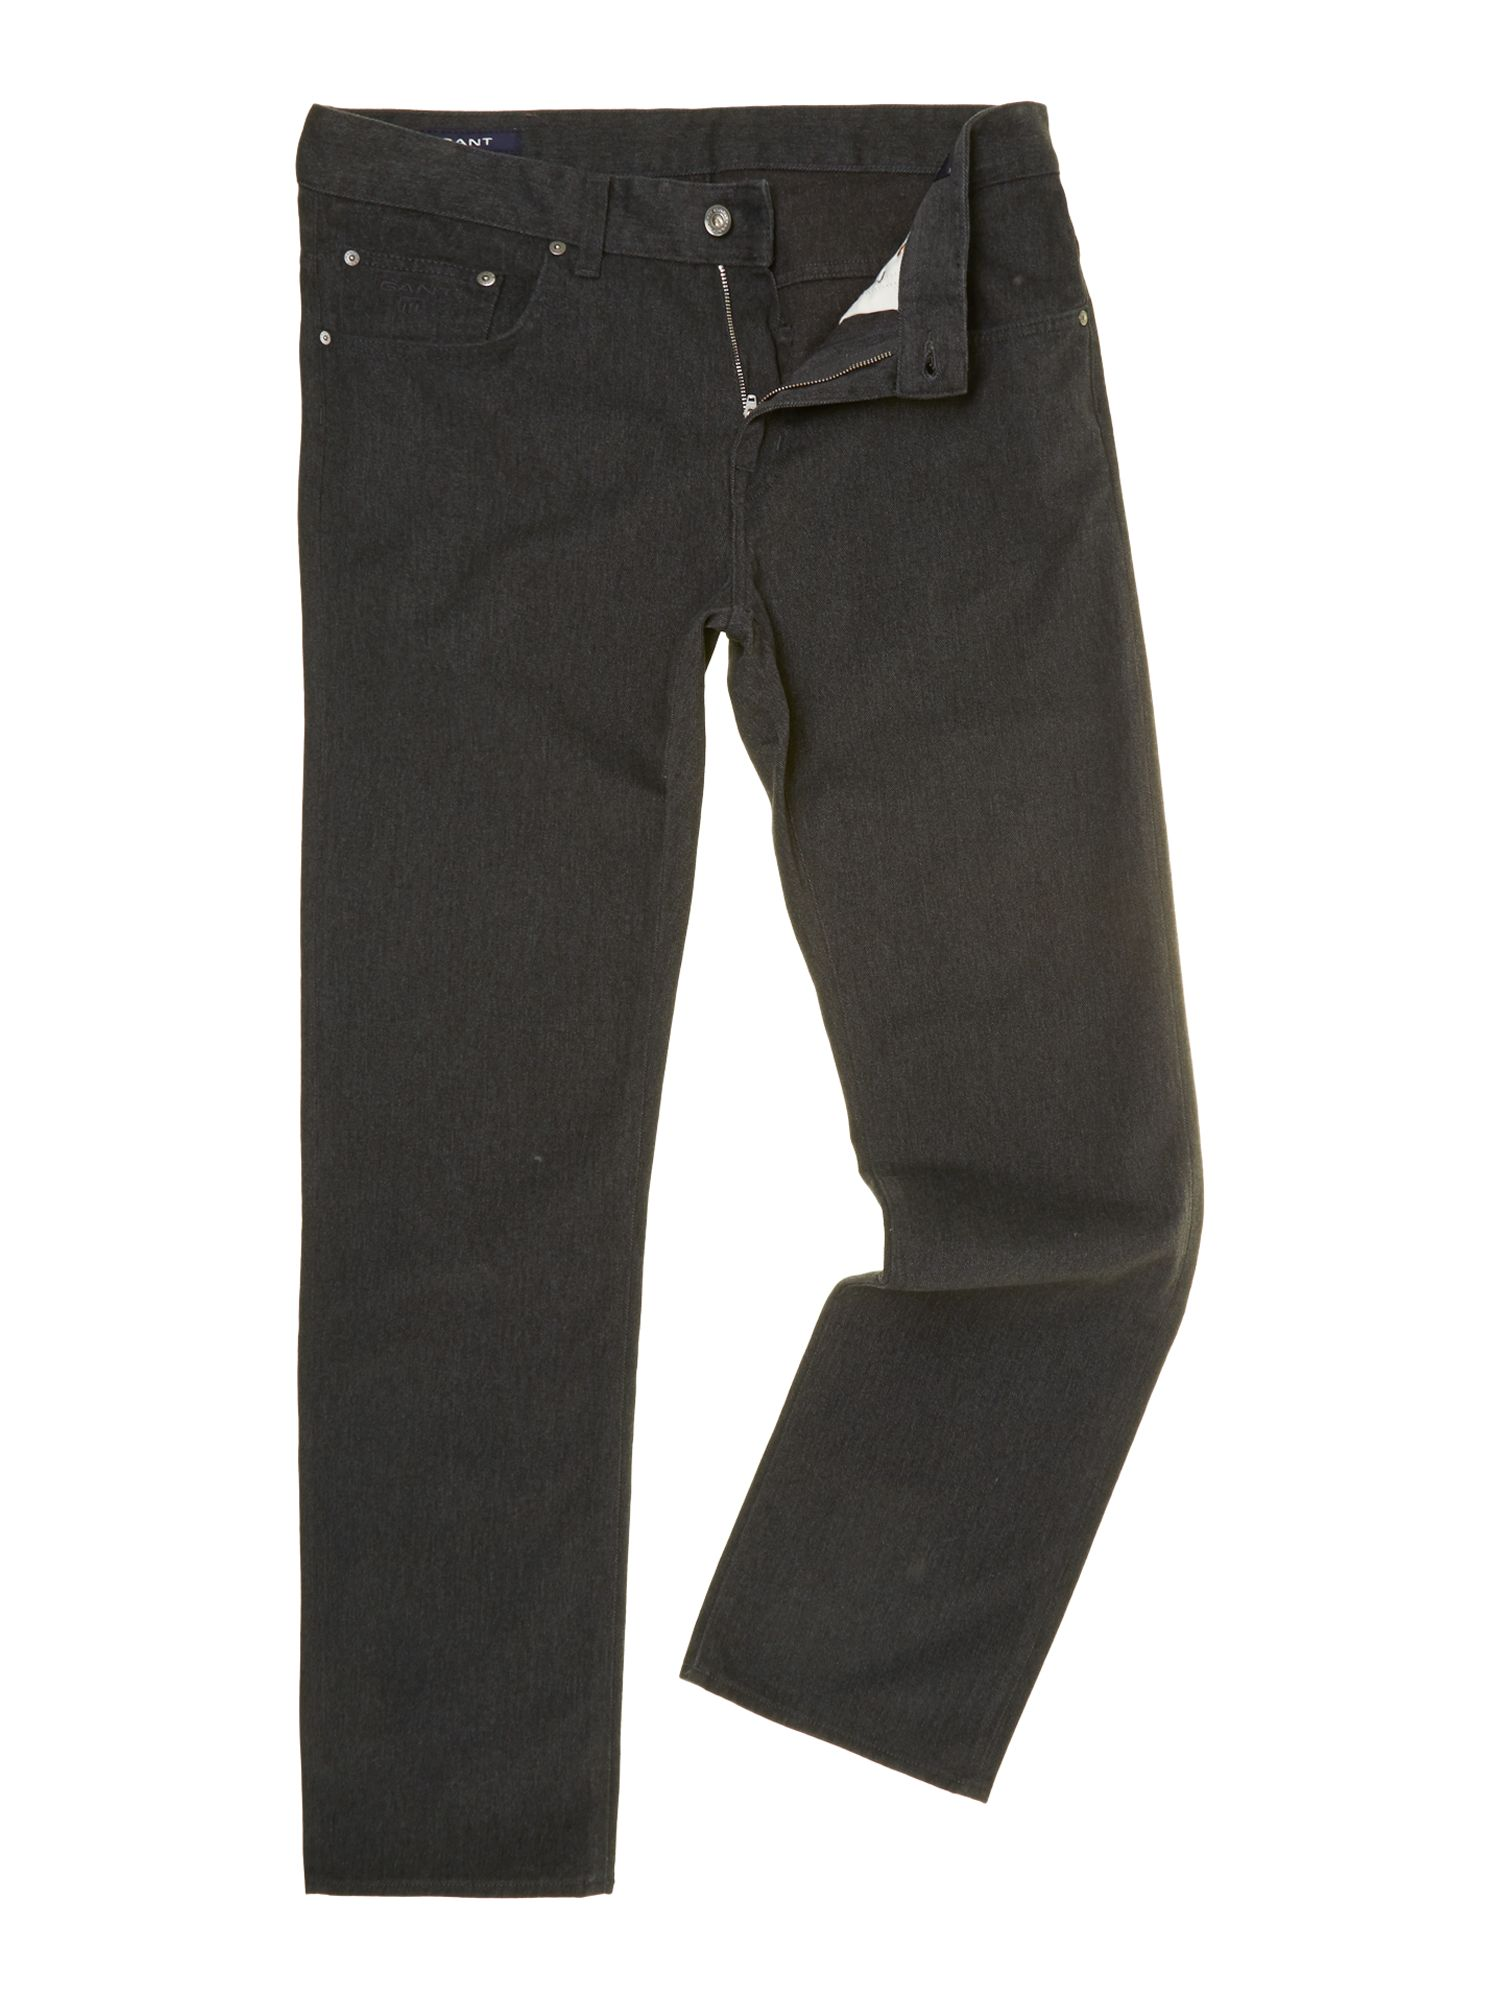 Regular fit Jason soft melange twill jean